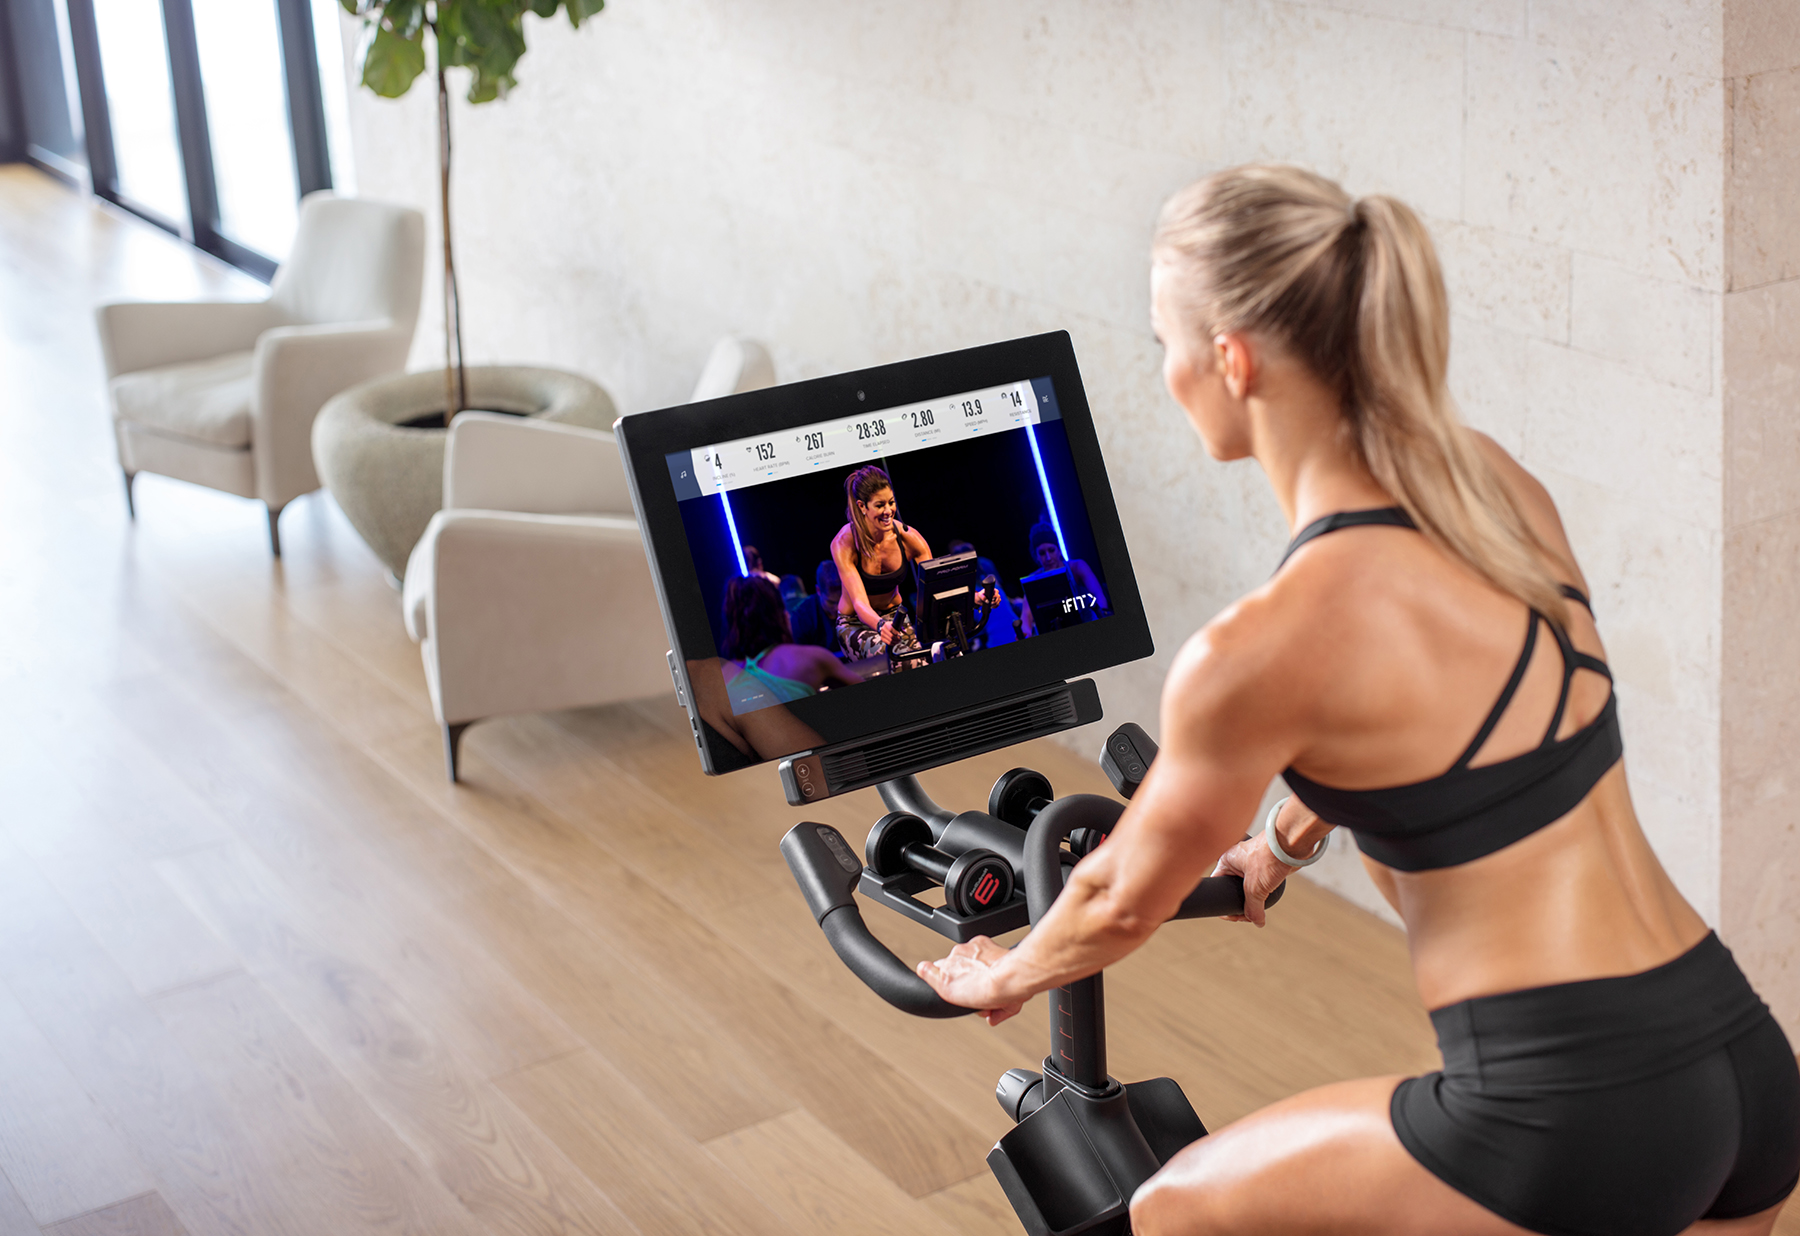 The NordicTrack iFit Exercise Bike Is My Favorite Piece of